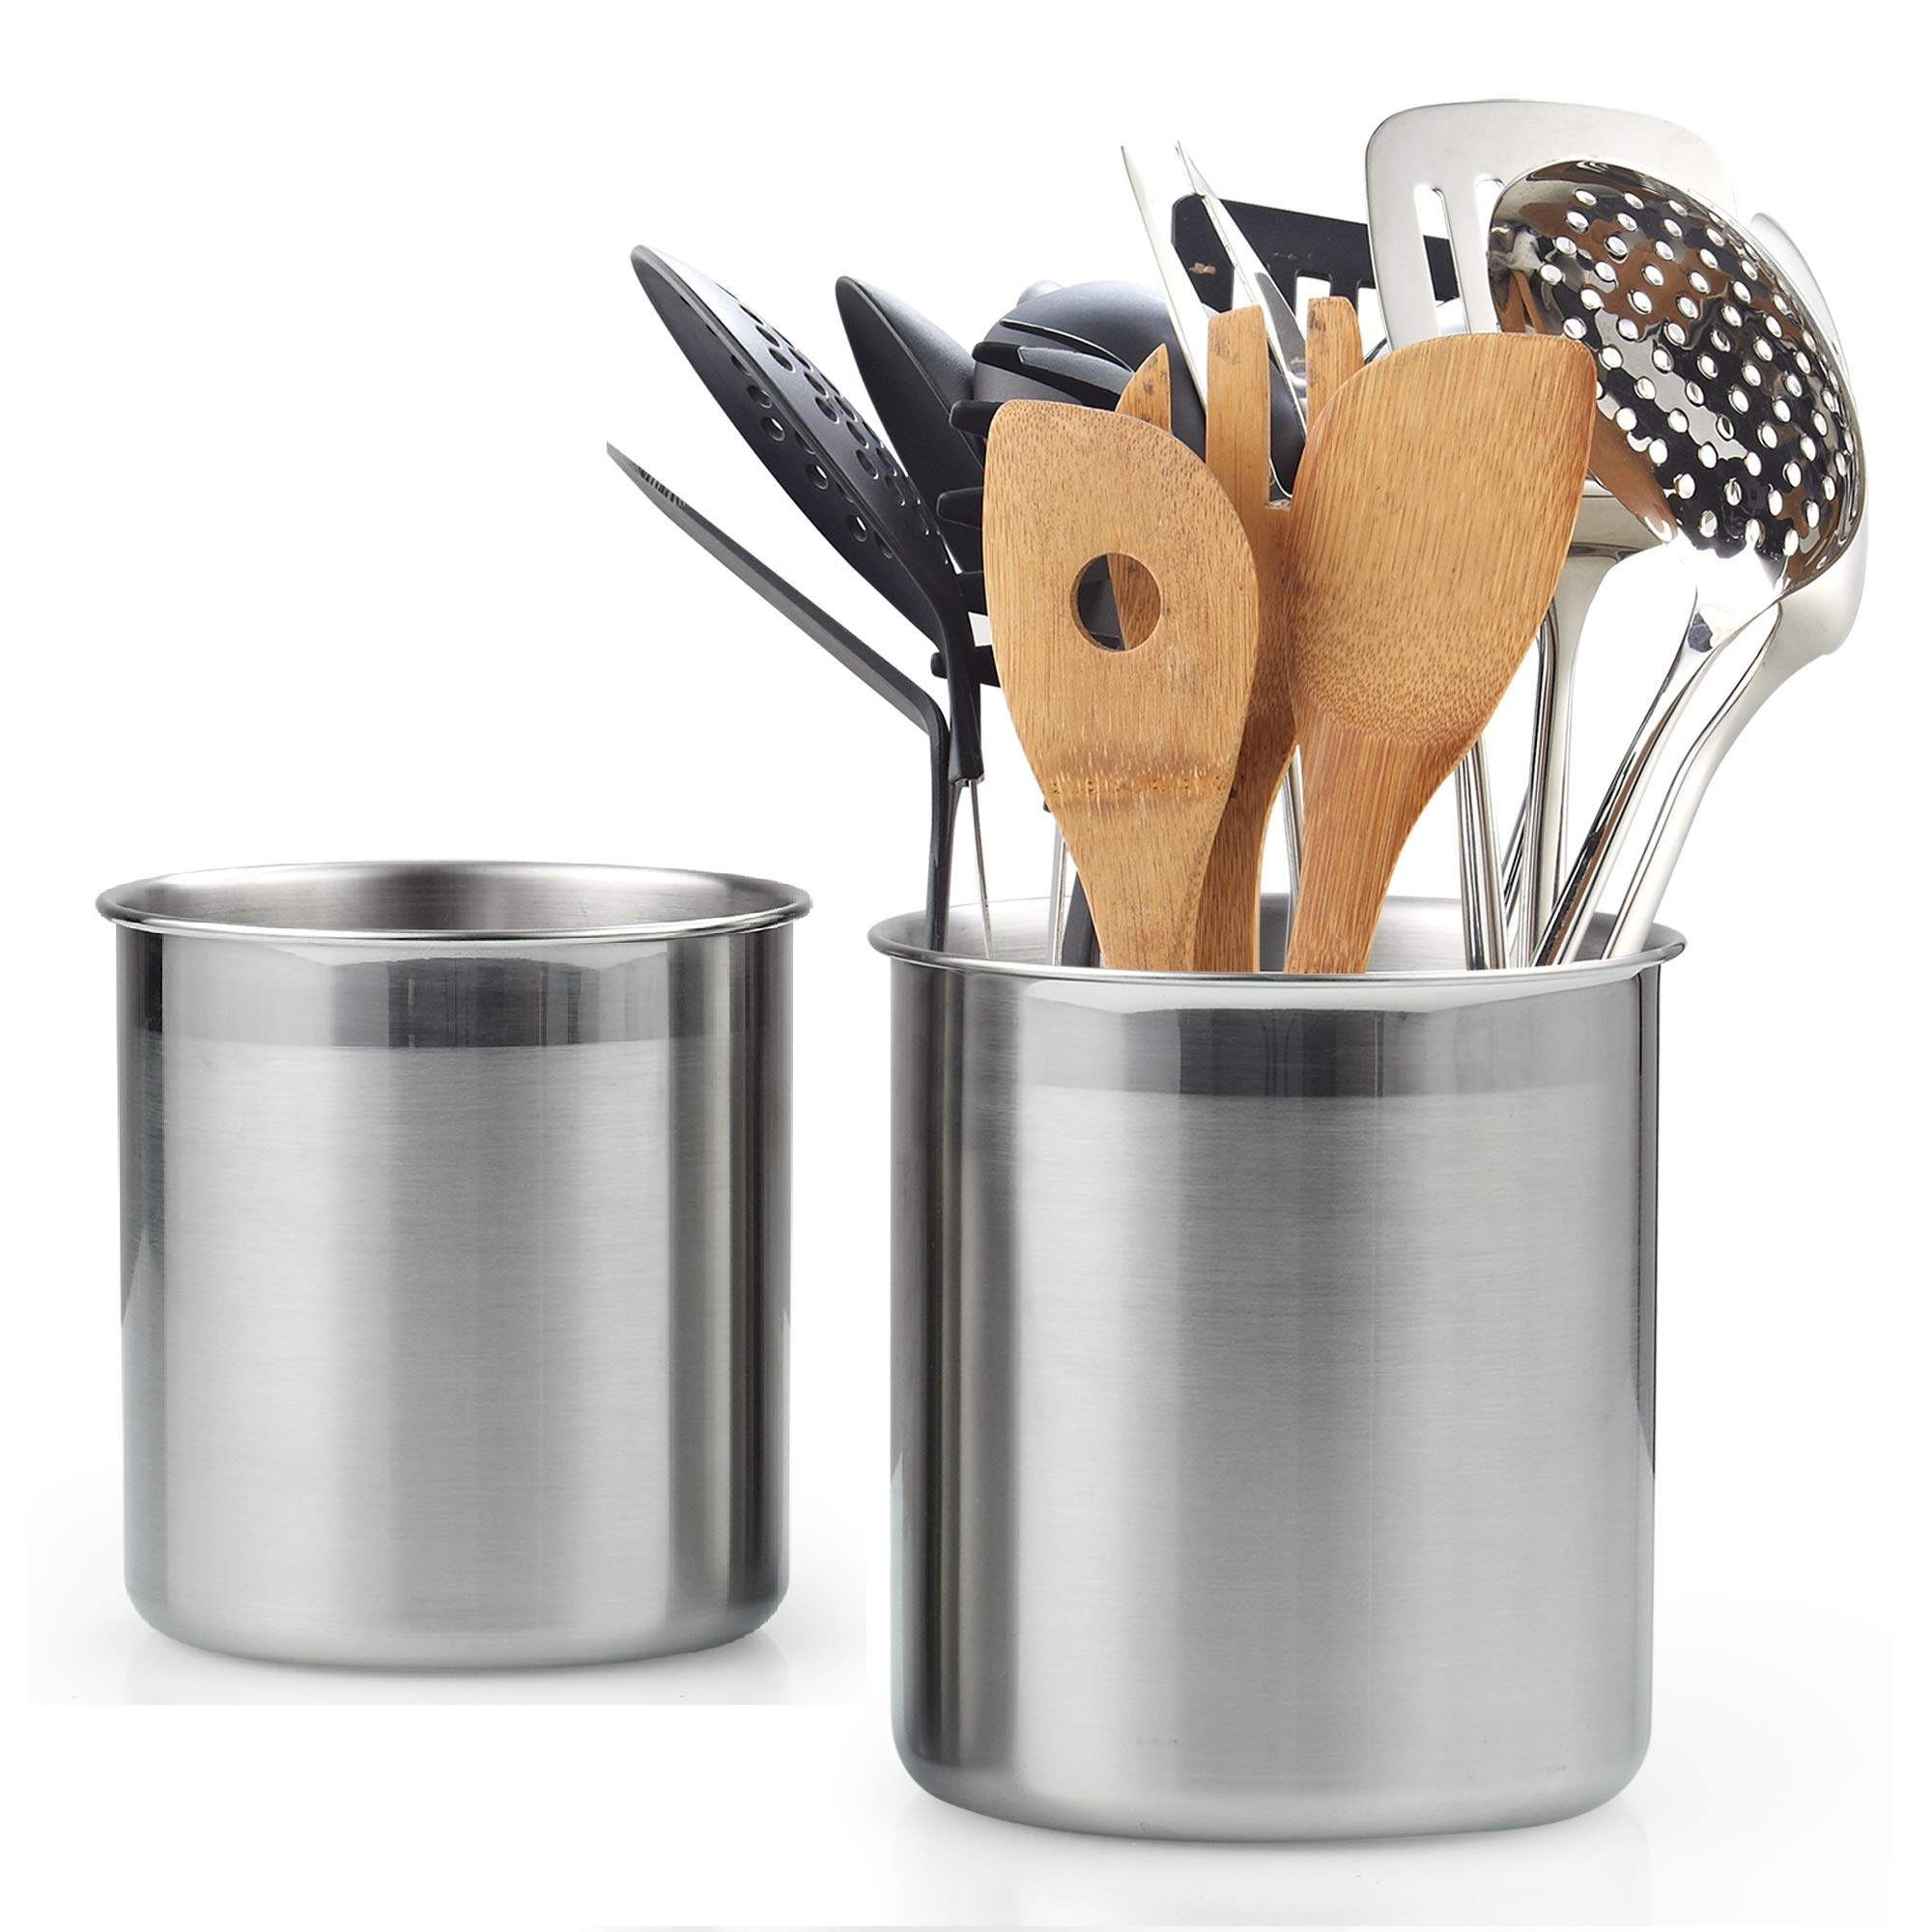 Cook N Home 02639 Stainless Steel Utensil Holder Jumbo 2PC set, 5.5-inch x 6.3-inch and 6.3-inch x 7.08-inch, Silver by Cook N Home